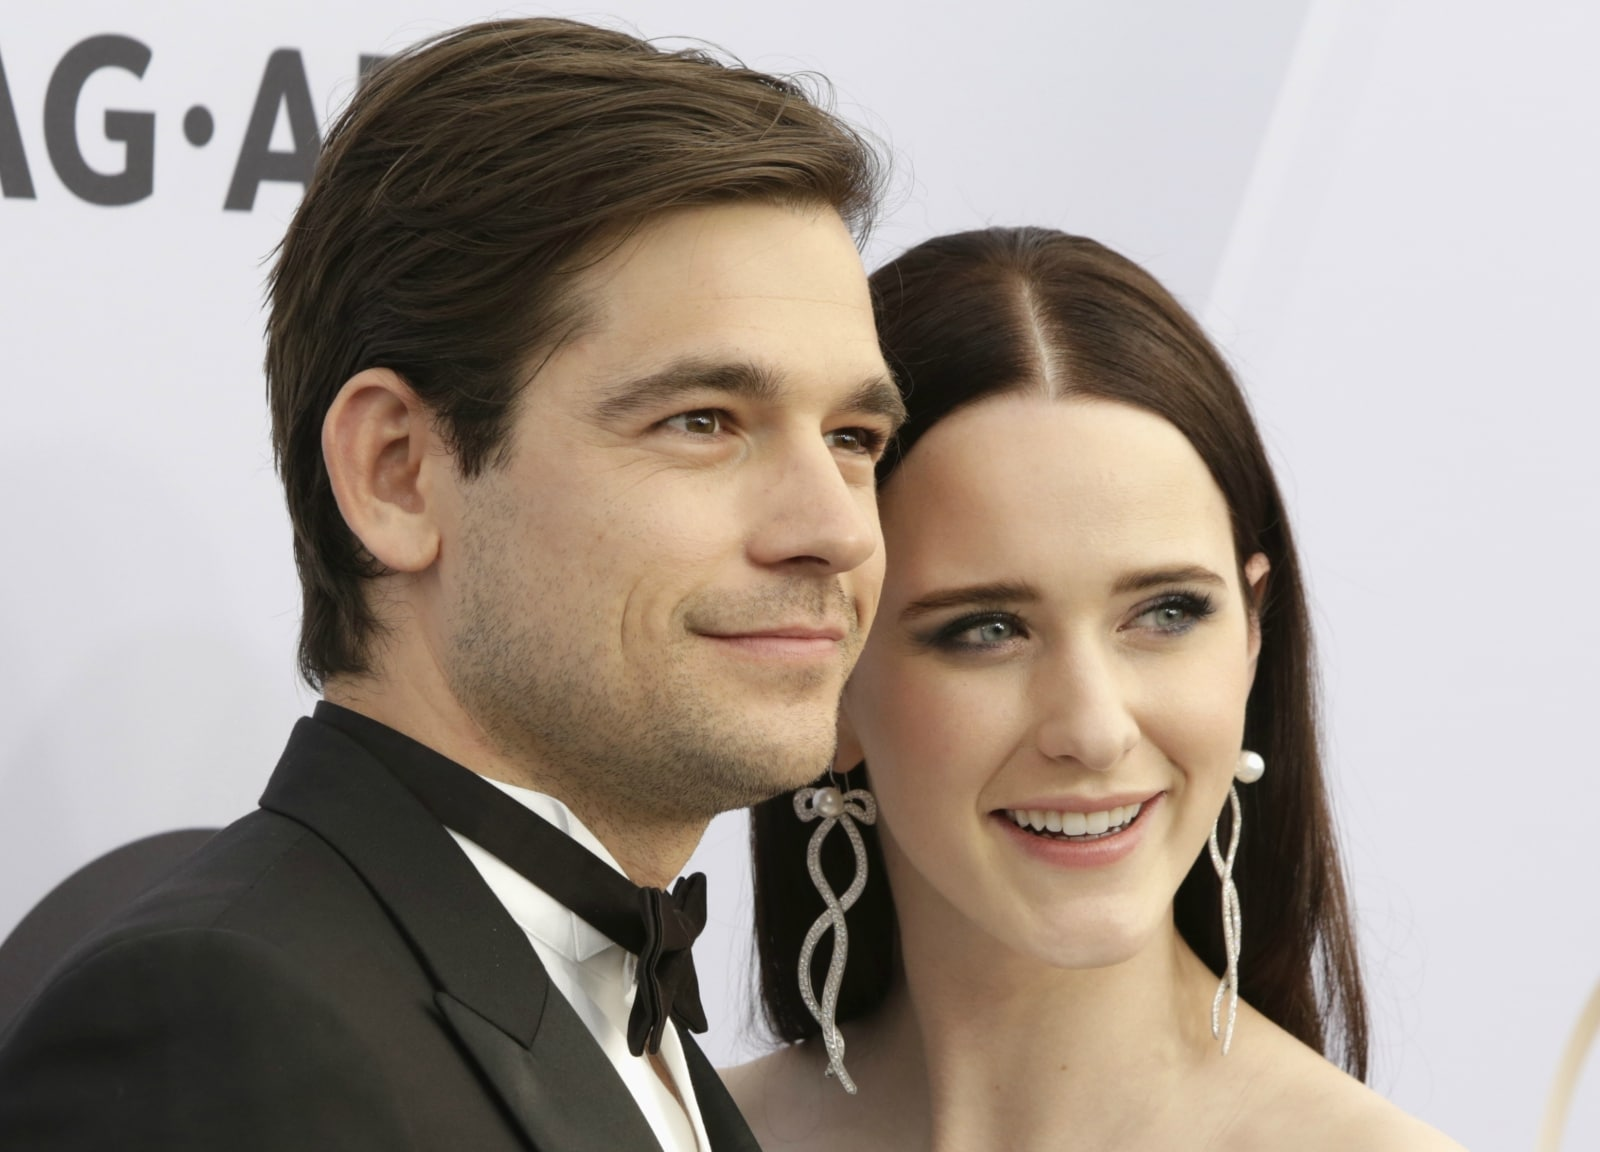 25th Screen Actors Guild Awards – Arrivals – Los Angeles, California, US, January 27, 2019 - Jason Ralph and Rachel Brosnahan pose. REUTERS/Monica Almeida